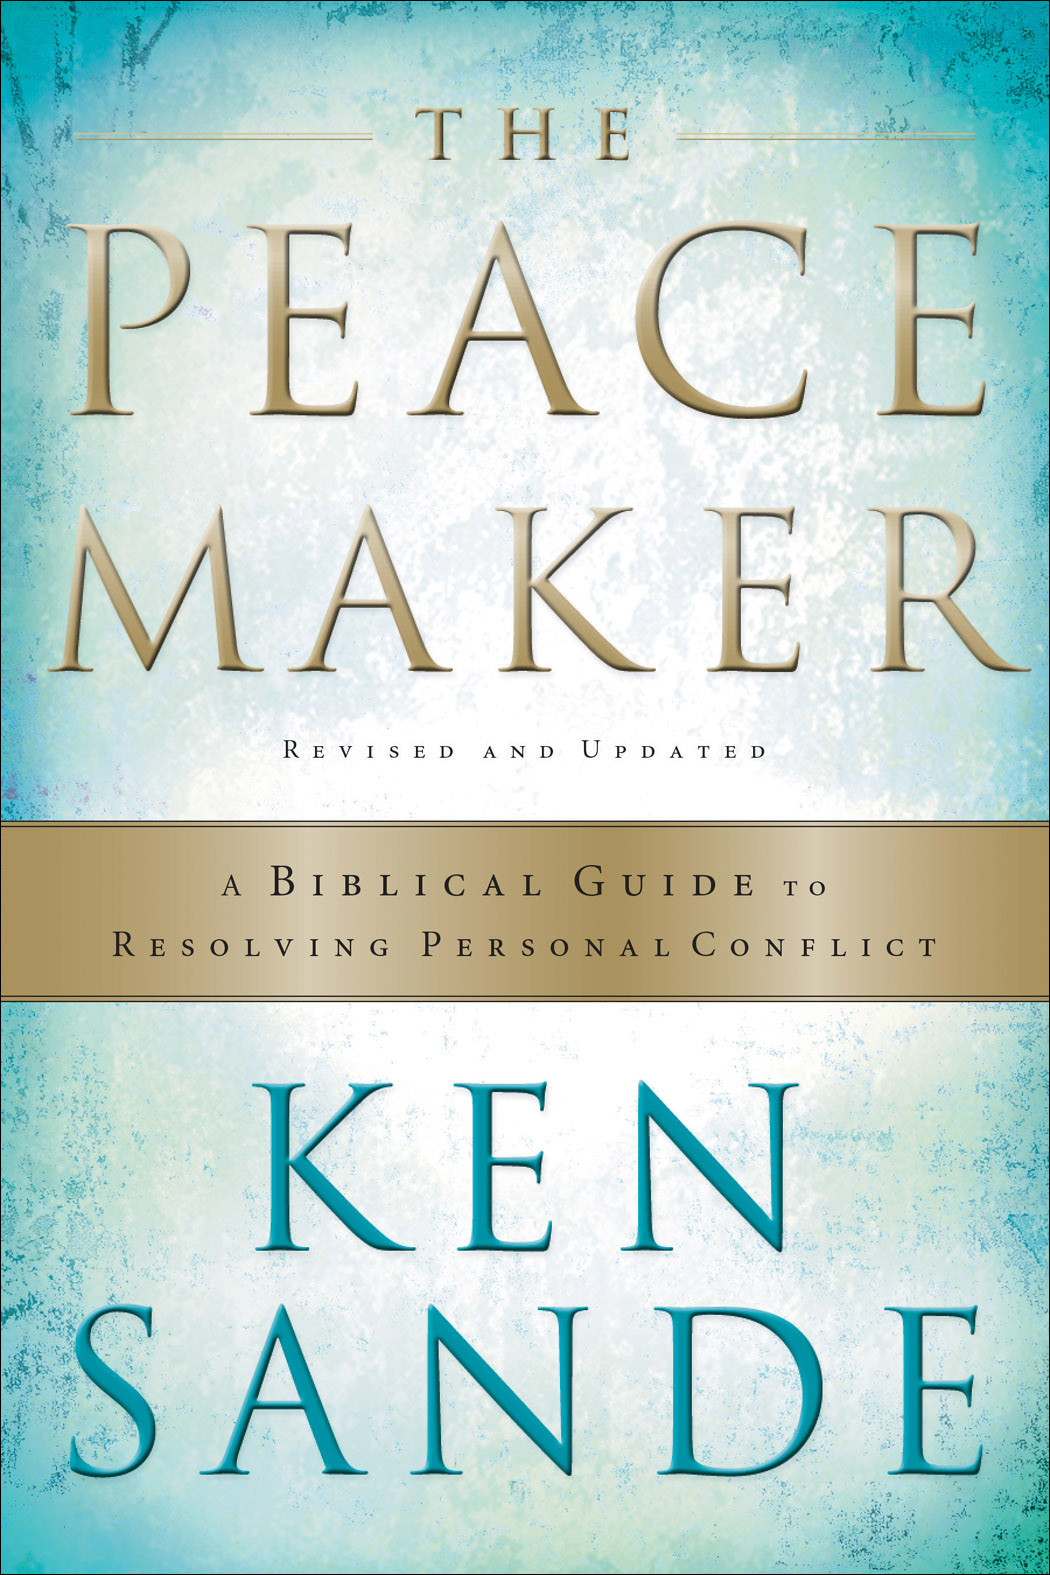 The Peacemaker By Ken Sande 9marks